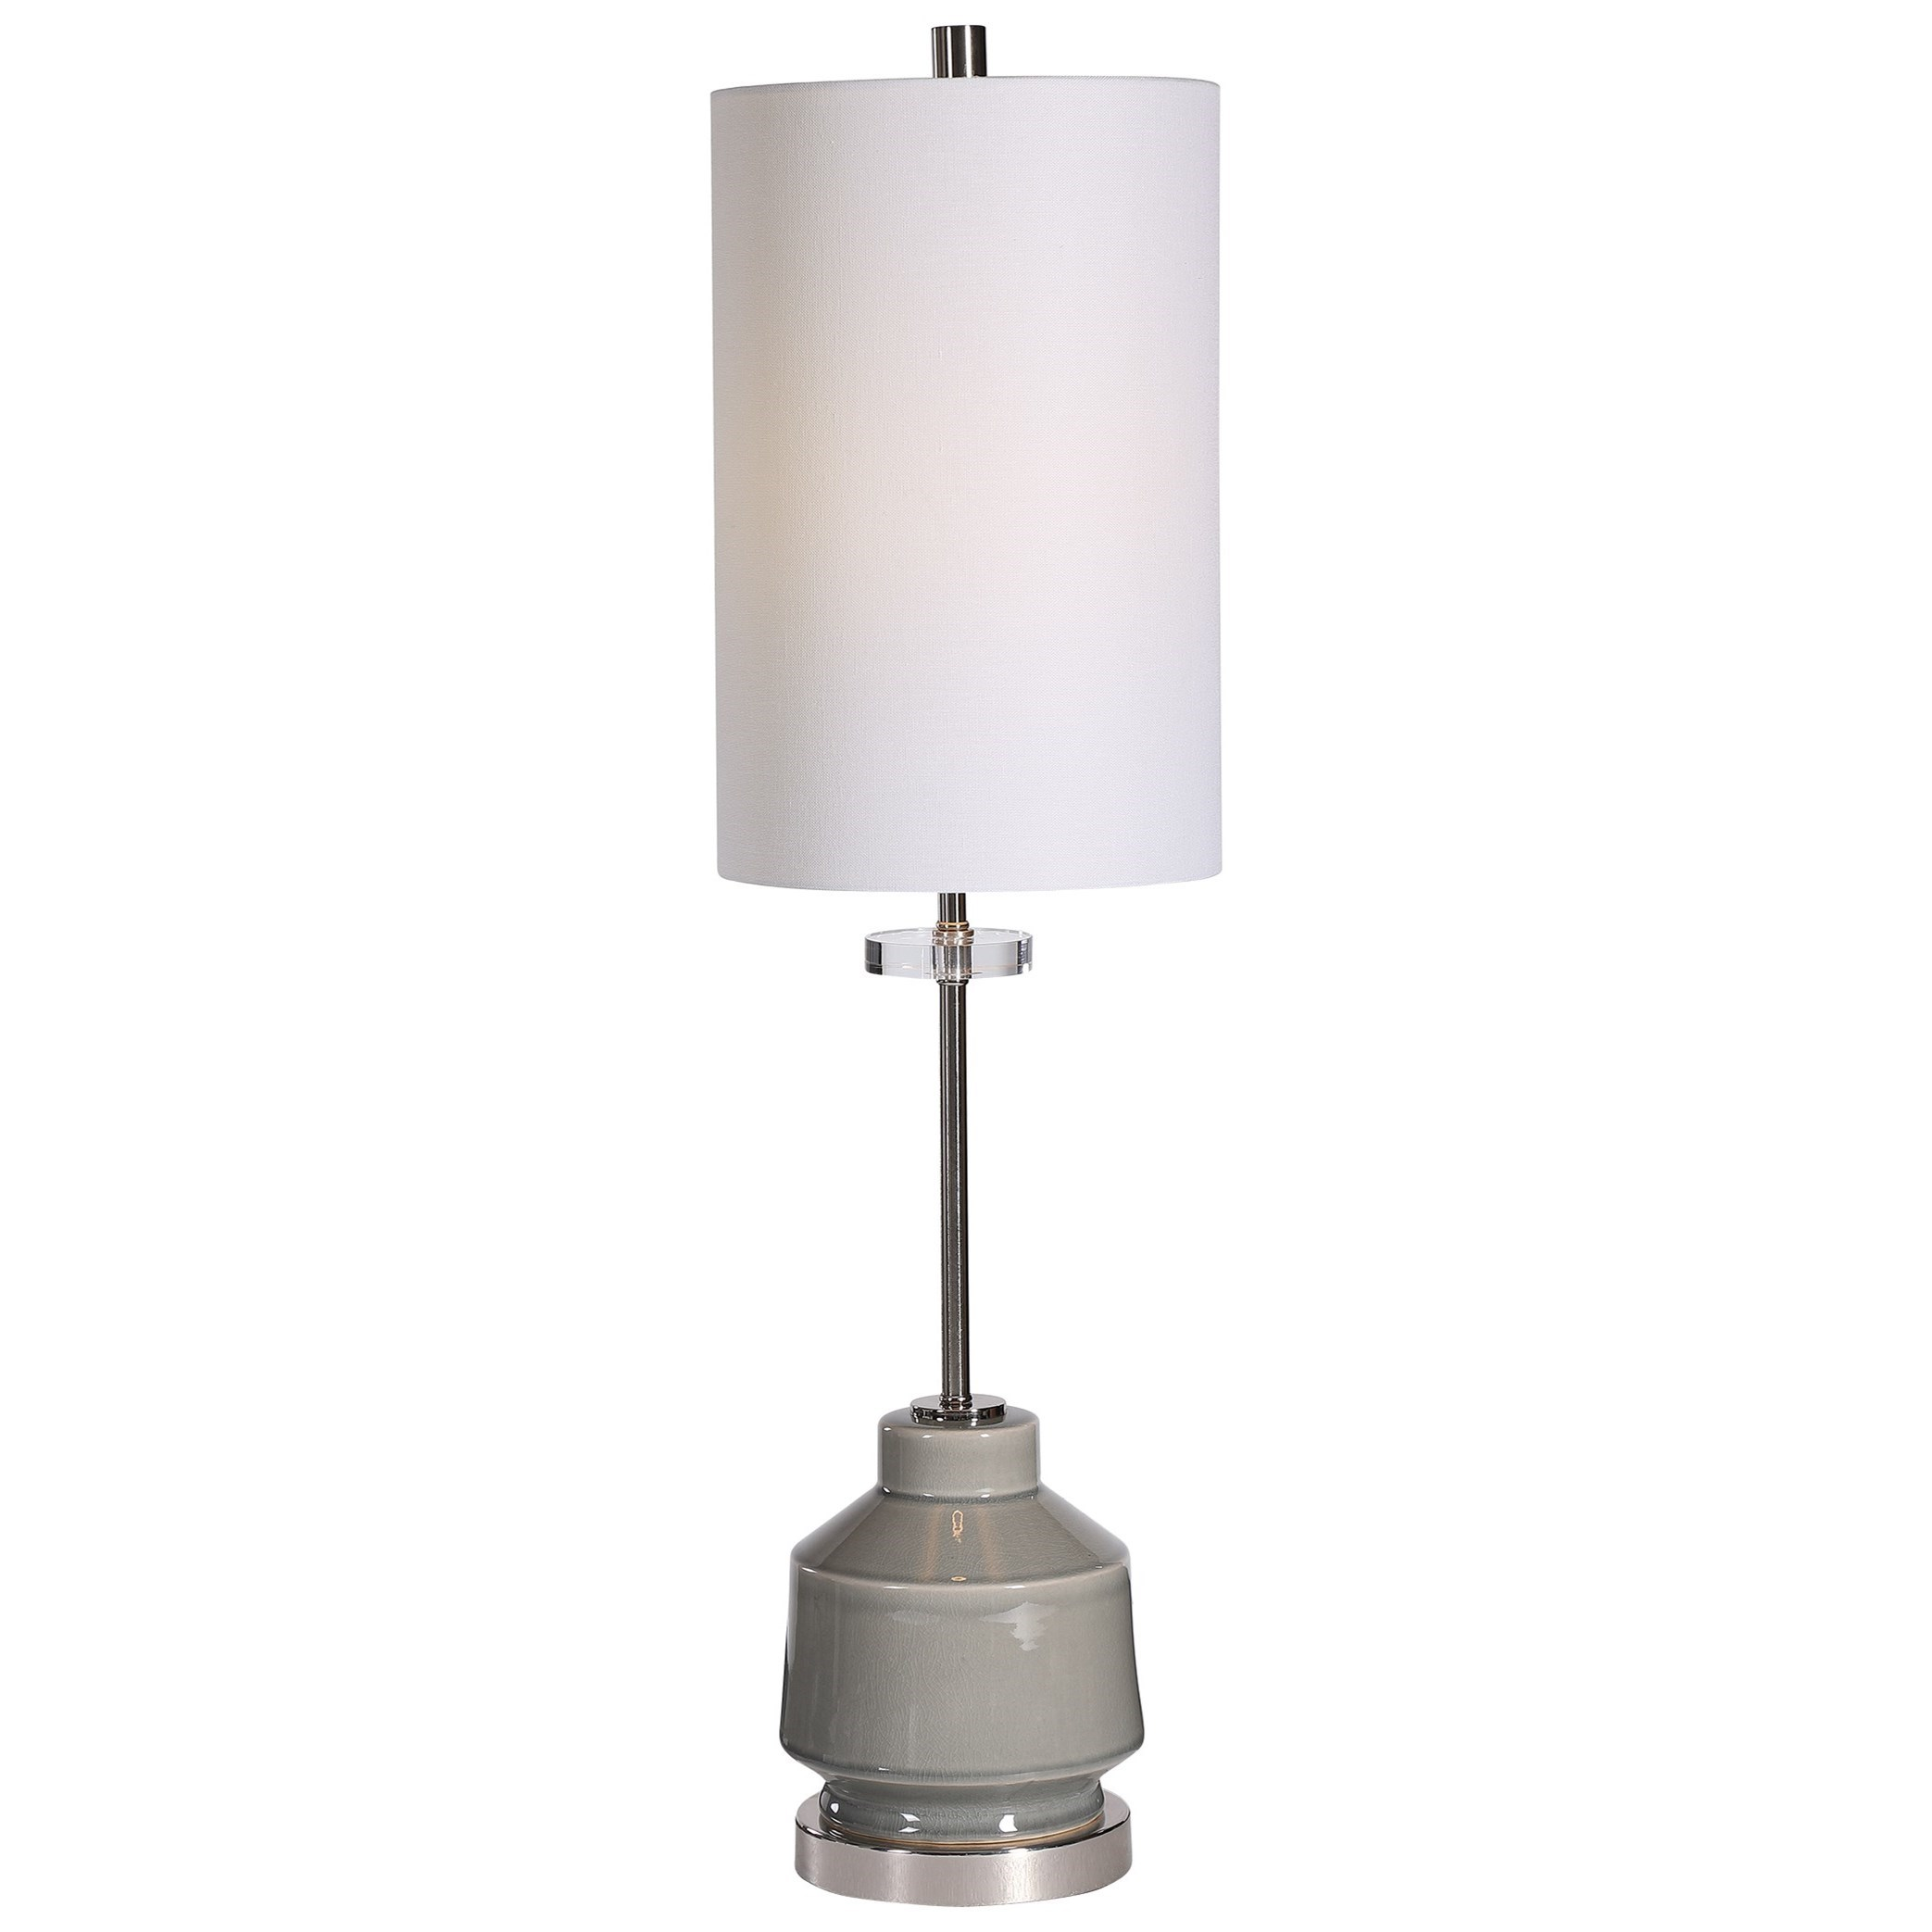 Buffet Lamps Porter Warm Gray Buffet Lamp by Uttermost at Suburban Furniture